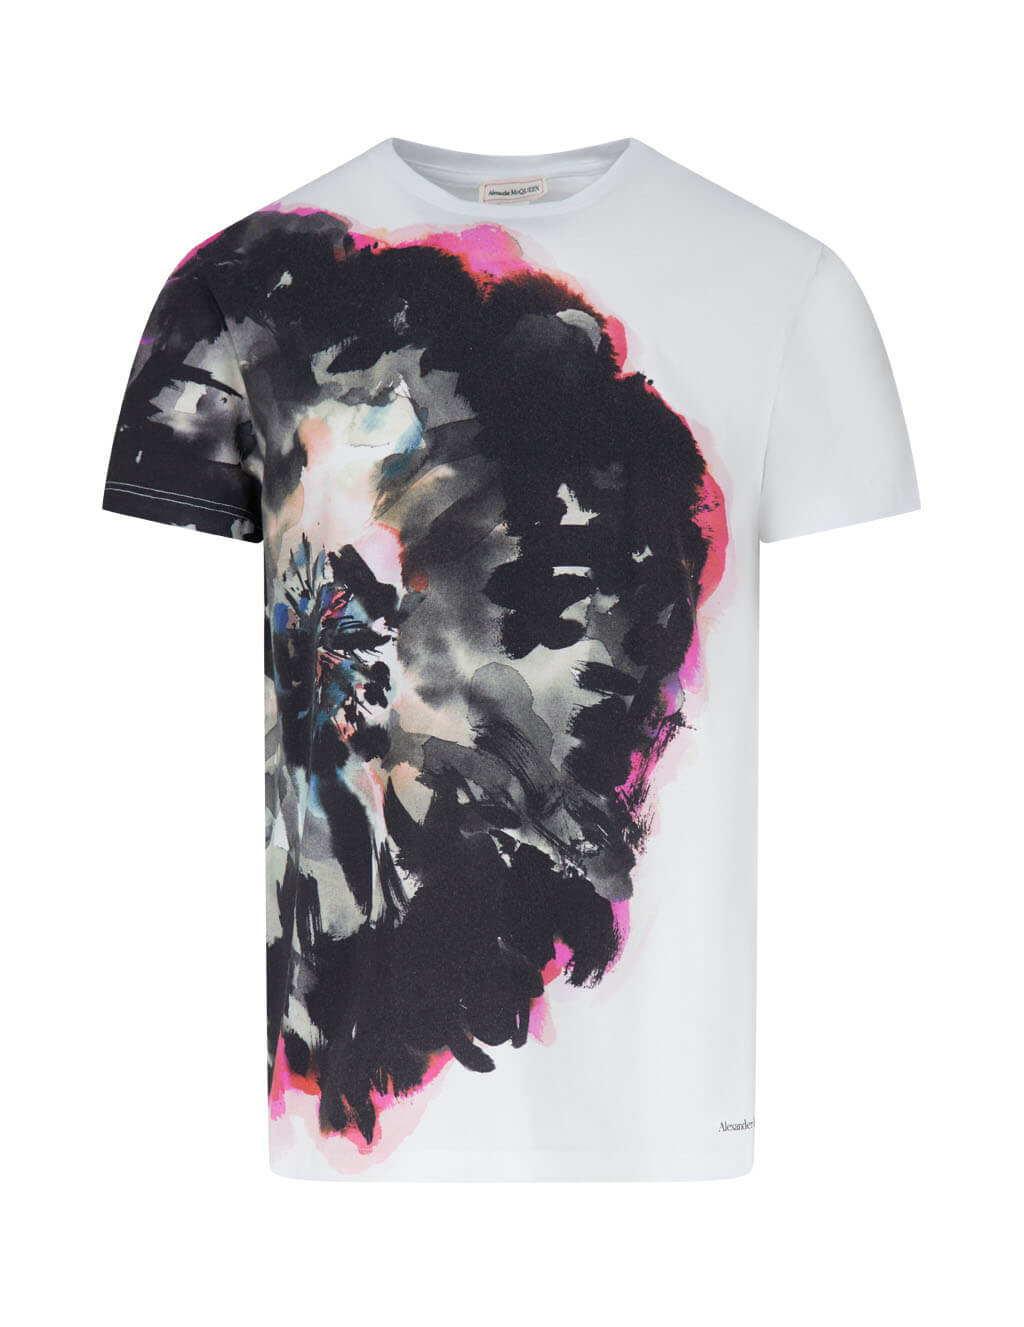 Alexander McQueen Men's Giulio Fashion White Ink Flower T-Shirt 609577QOZ910900